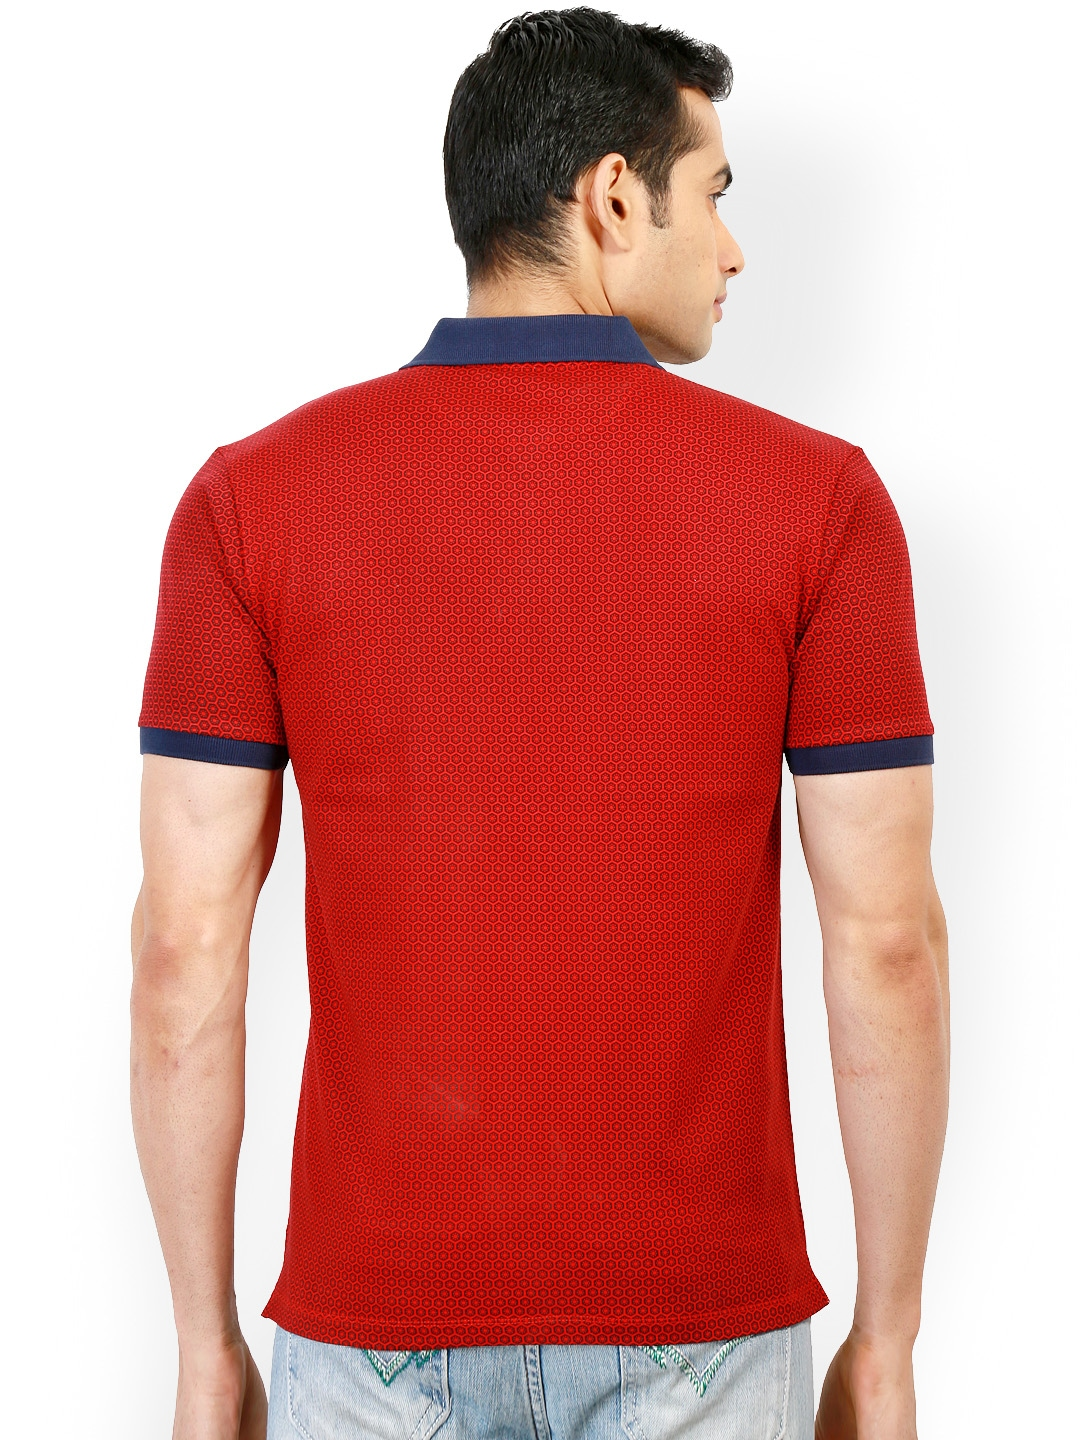 Myntra design classics red printed slim fit polo t shirt for Myntra t shirt design